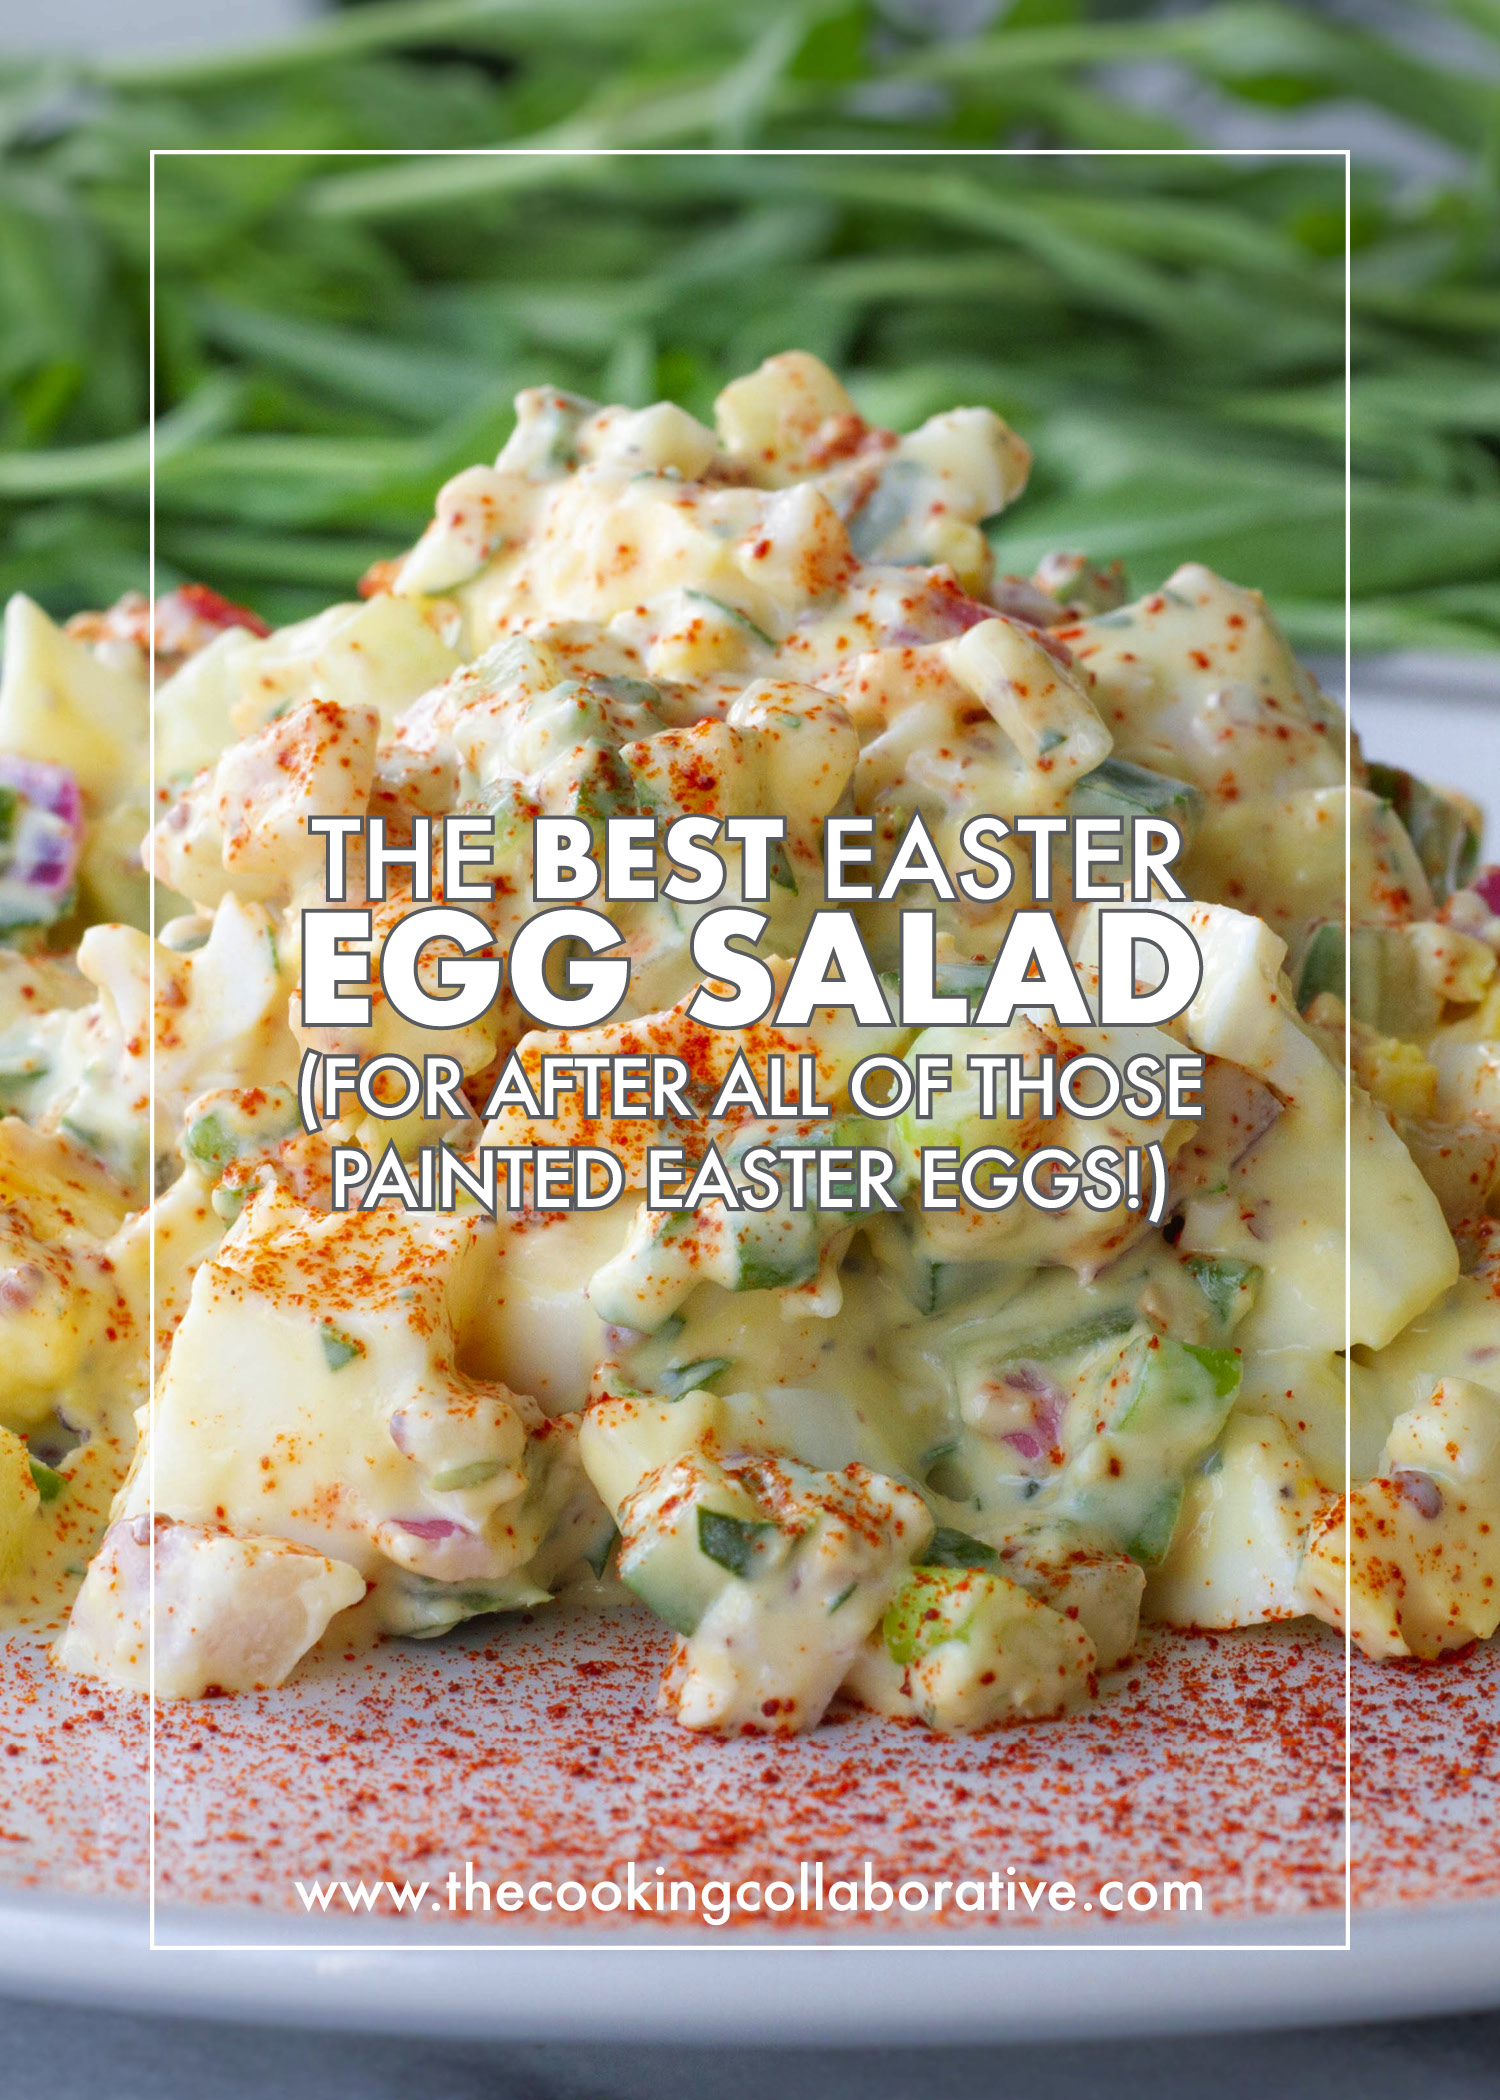 EASTER EGG SALAD.jpg